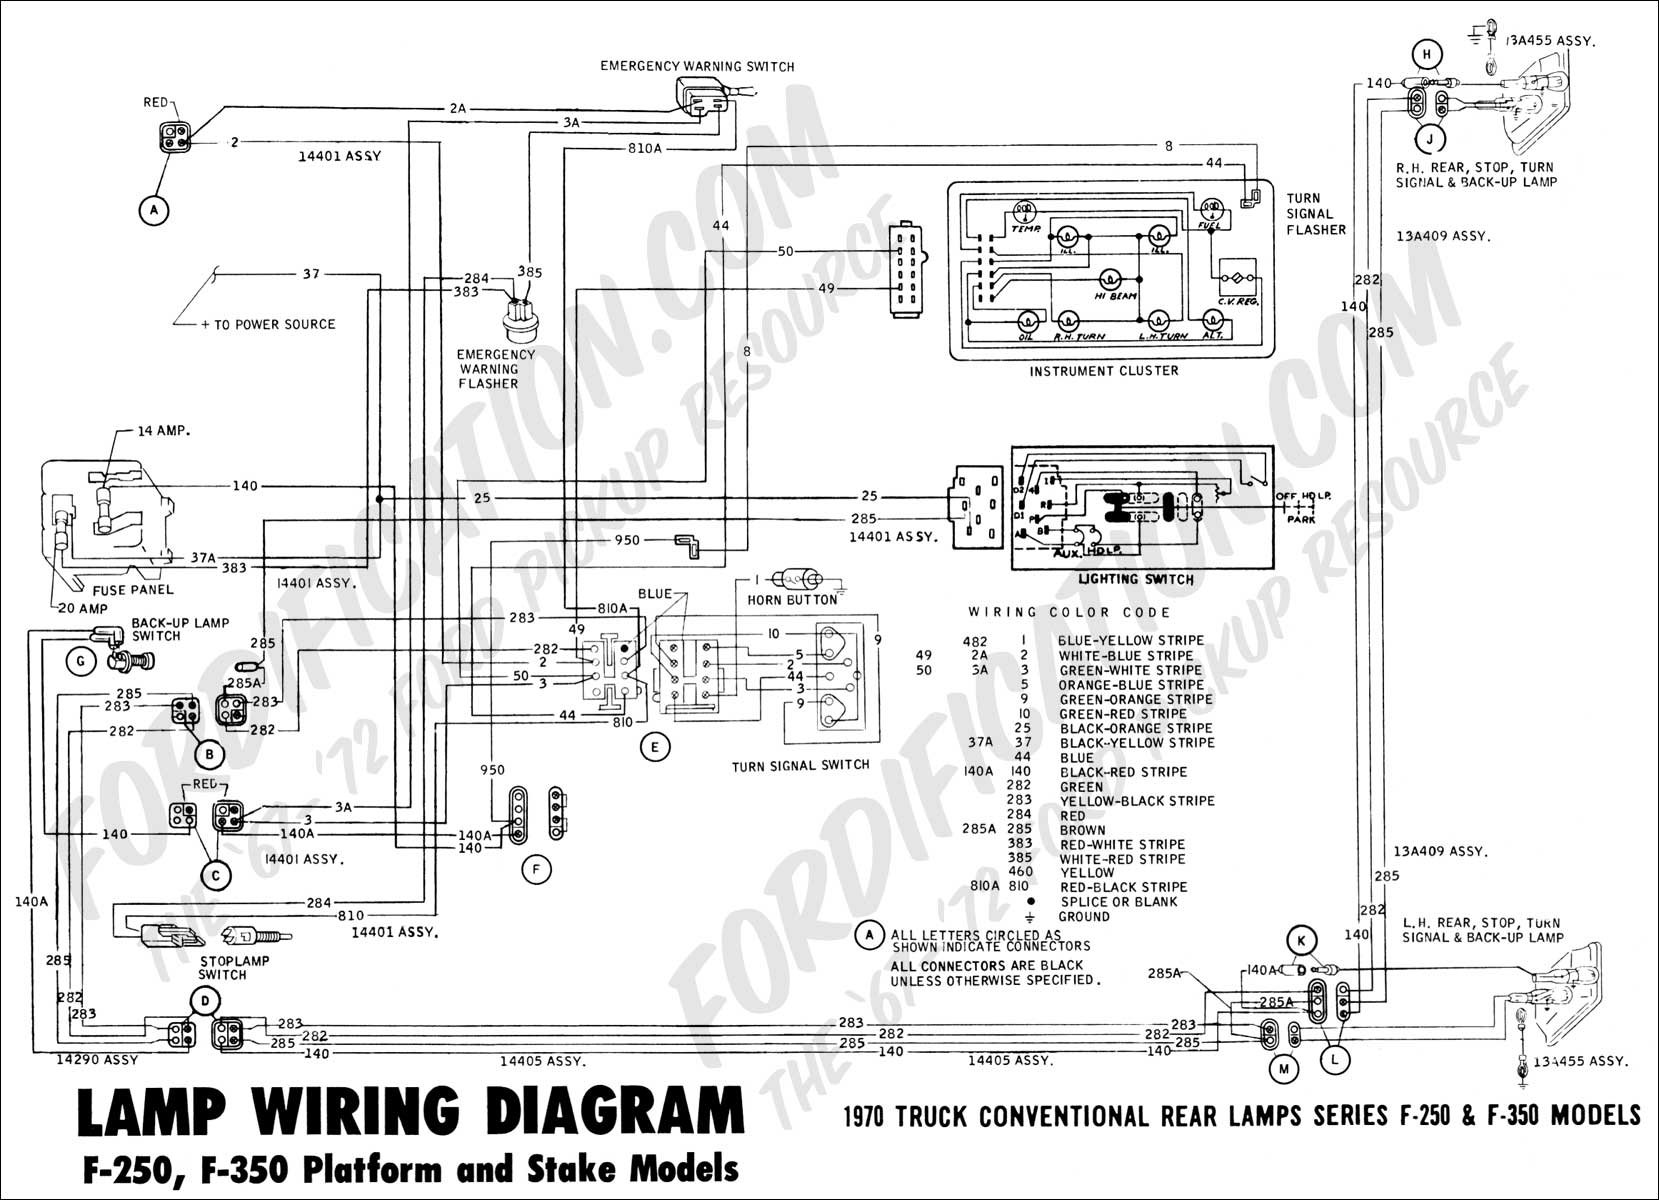 4x4 ford f 350 wiring diagrams wiring libraryf350 4x4 wiring wiring library 2002 ford explorer repair diagrams 4x4 ford f 350 wiring diagrams